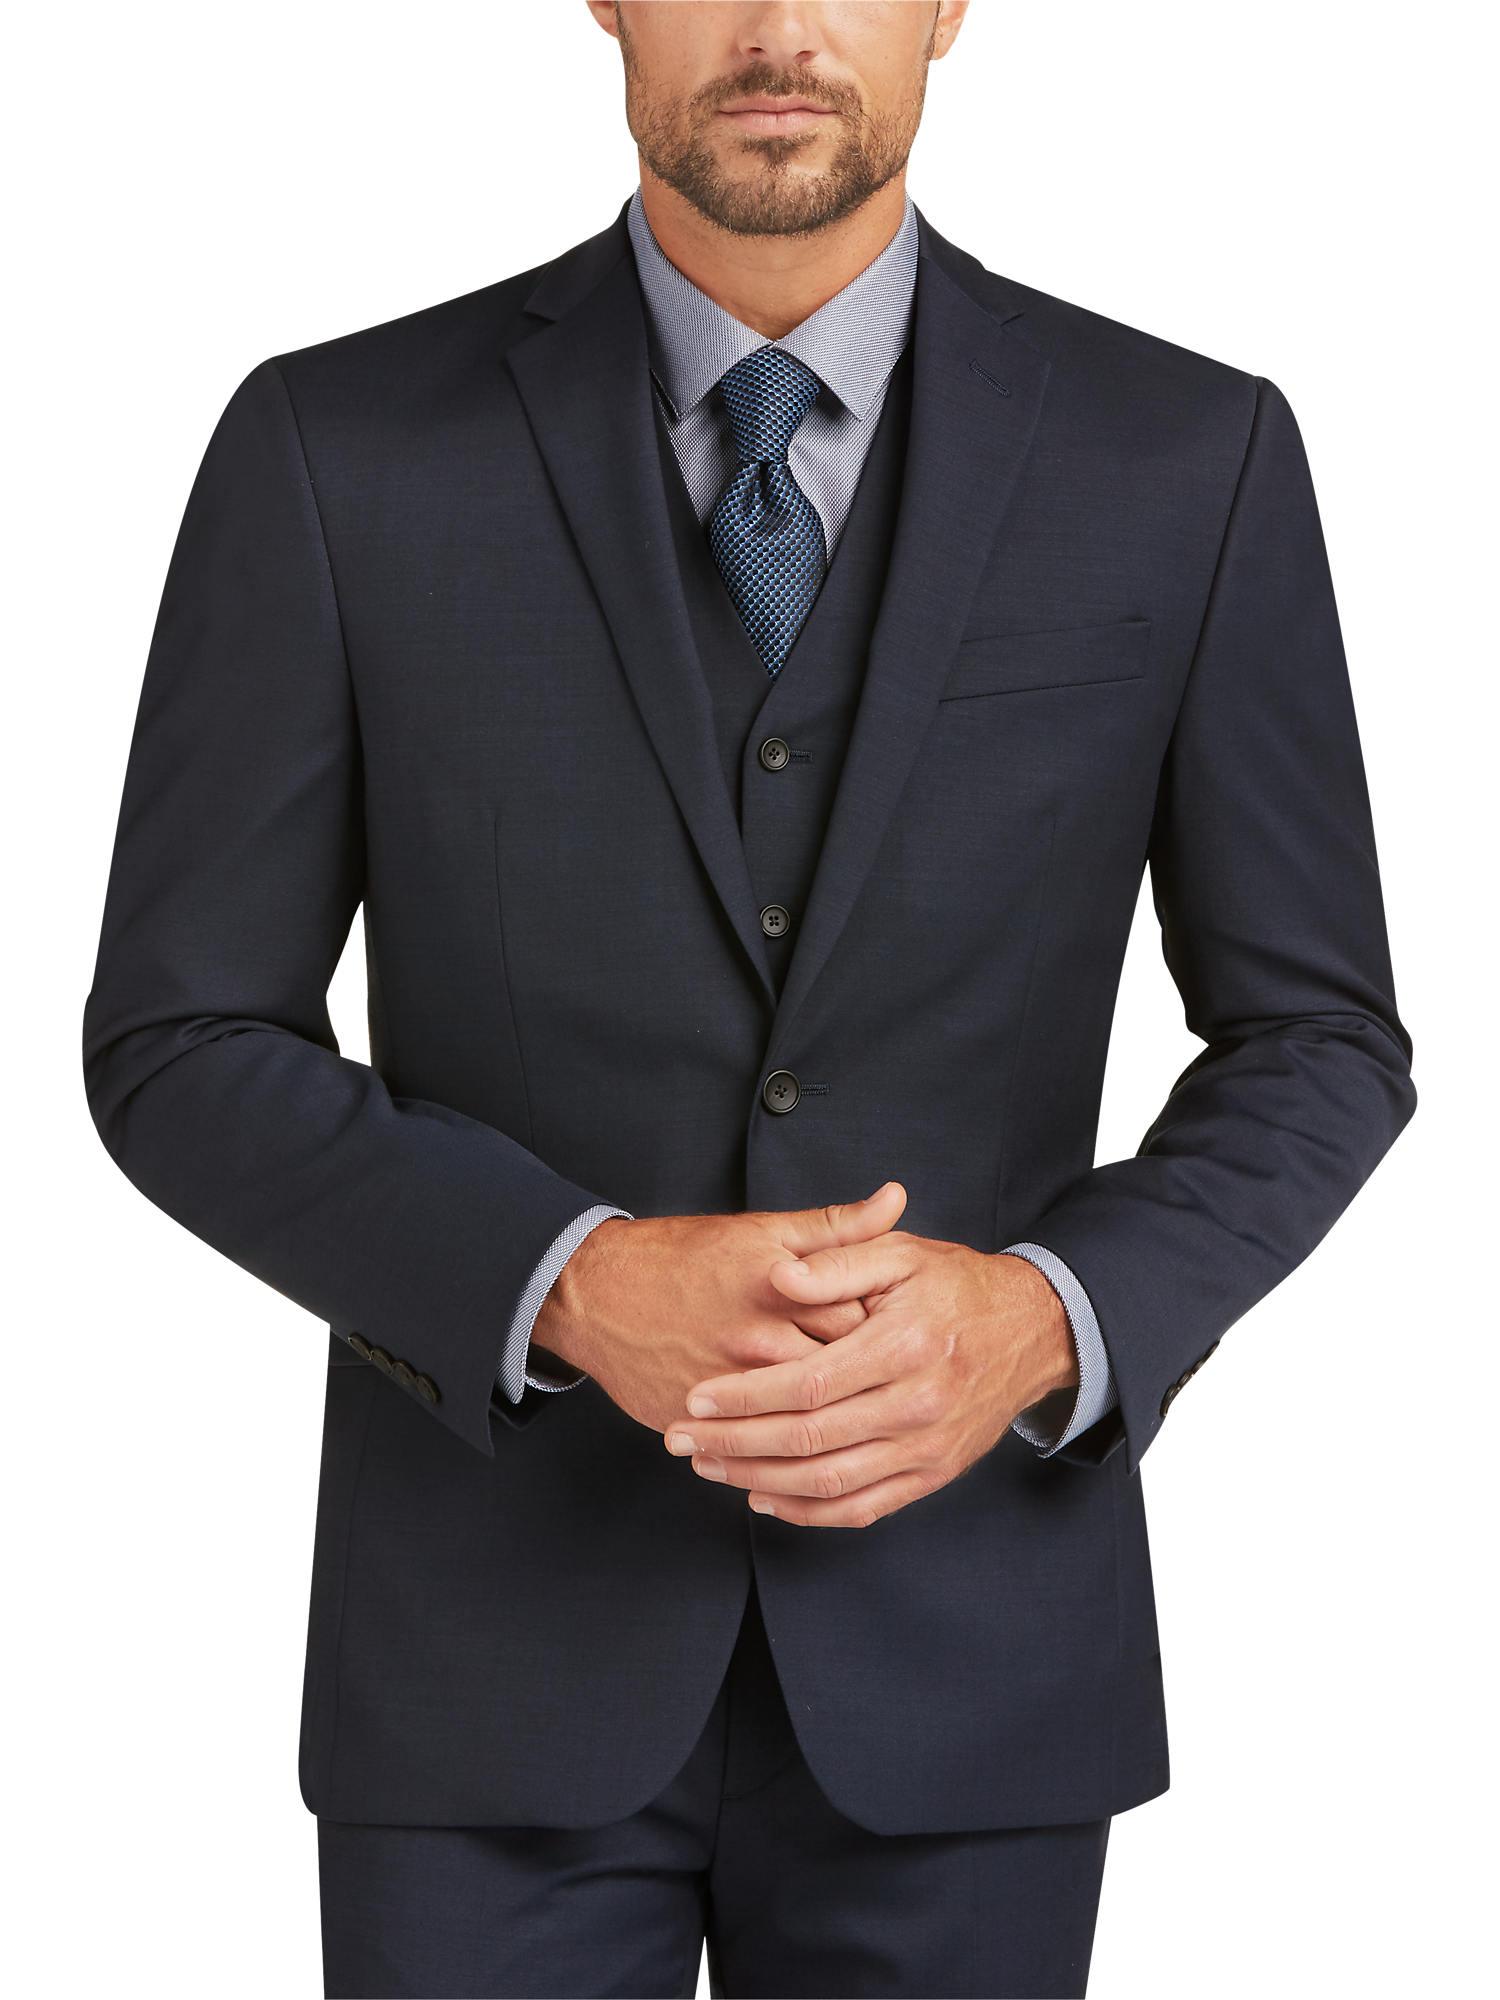 Suit High Quality Background on Wallpapers Vista